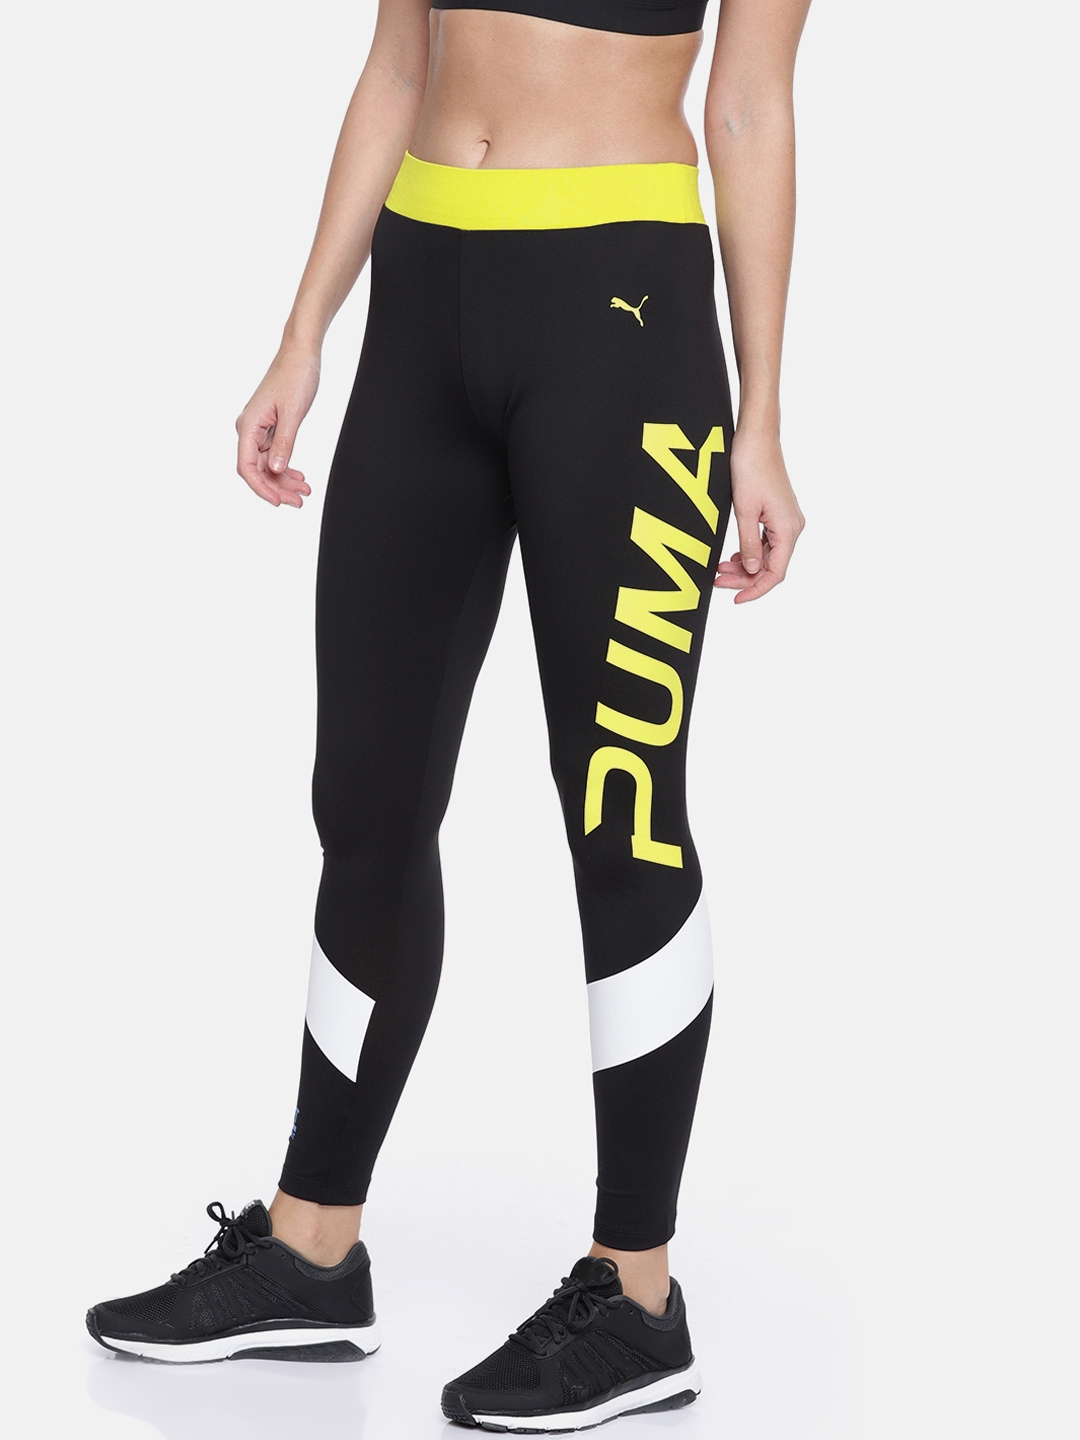 Activewear Puma Amplified Womens Ladies Sports Fitness Legging Black